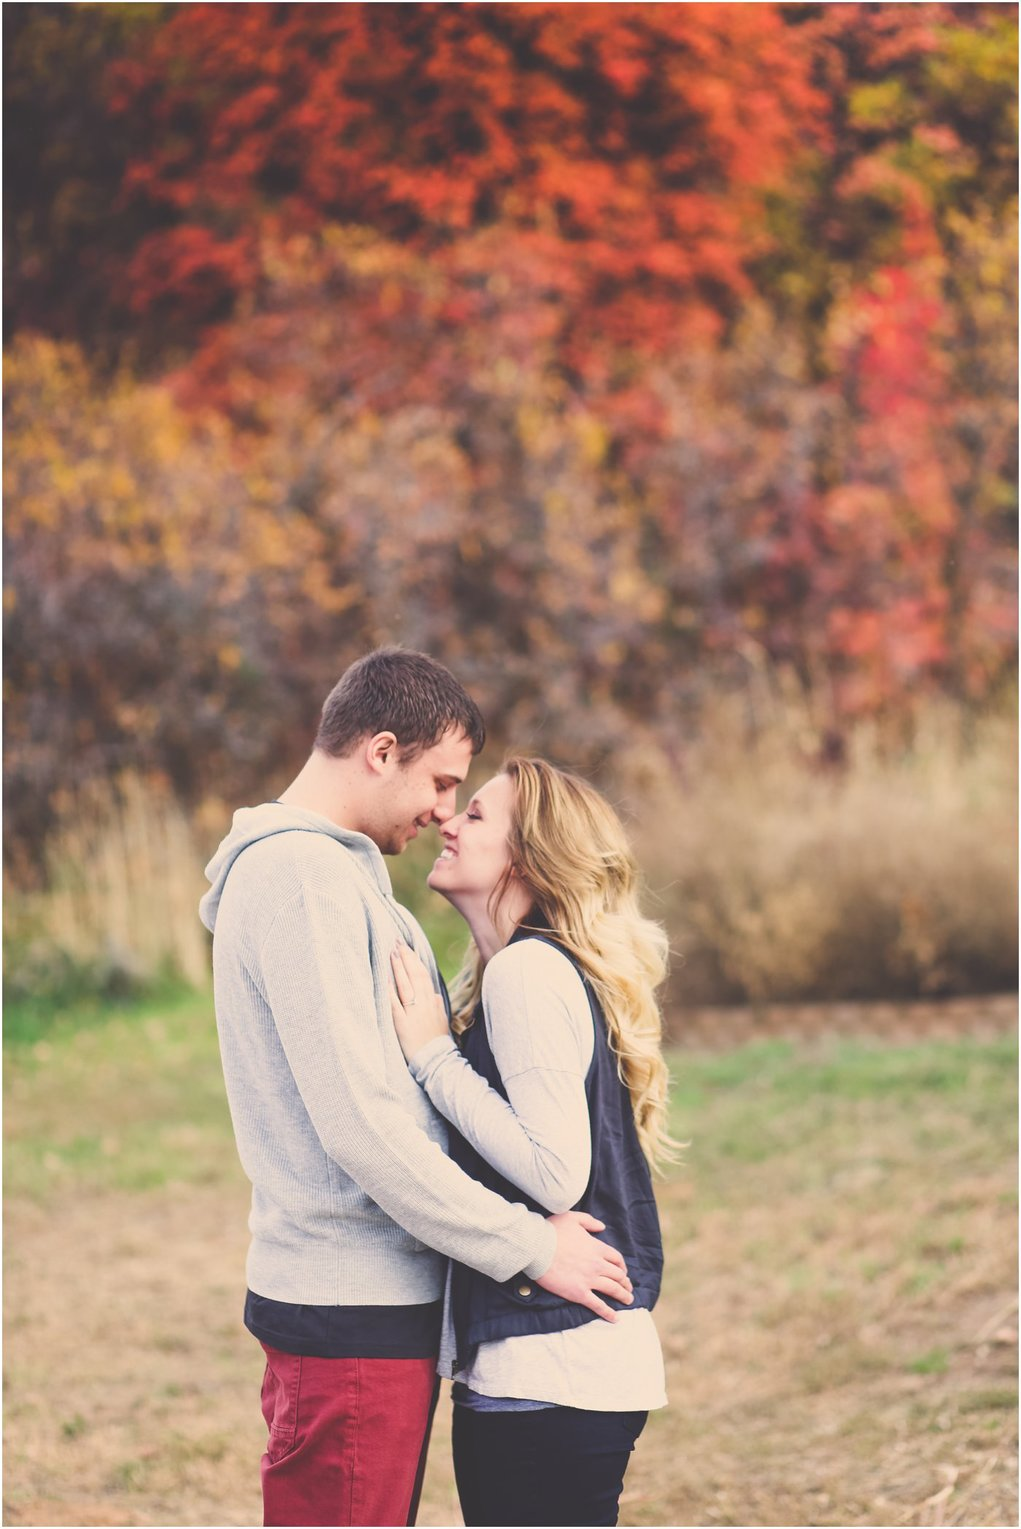 volk_engagements (3 of 100)_Amy_Hirschi_Photography